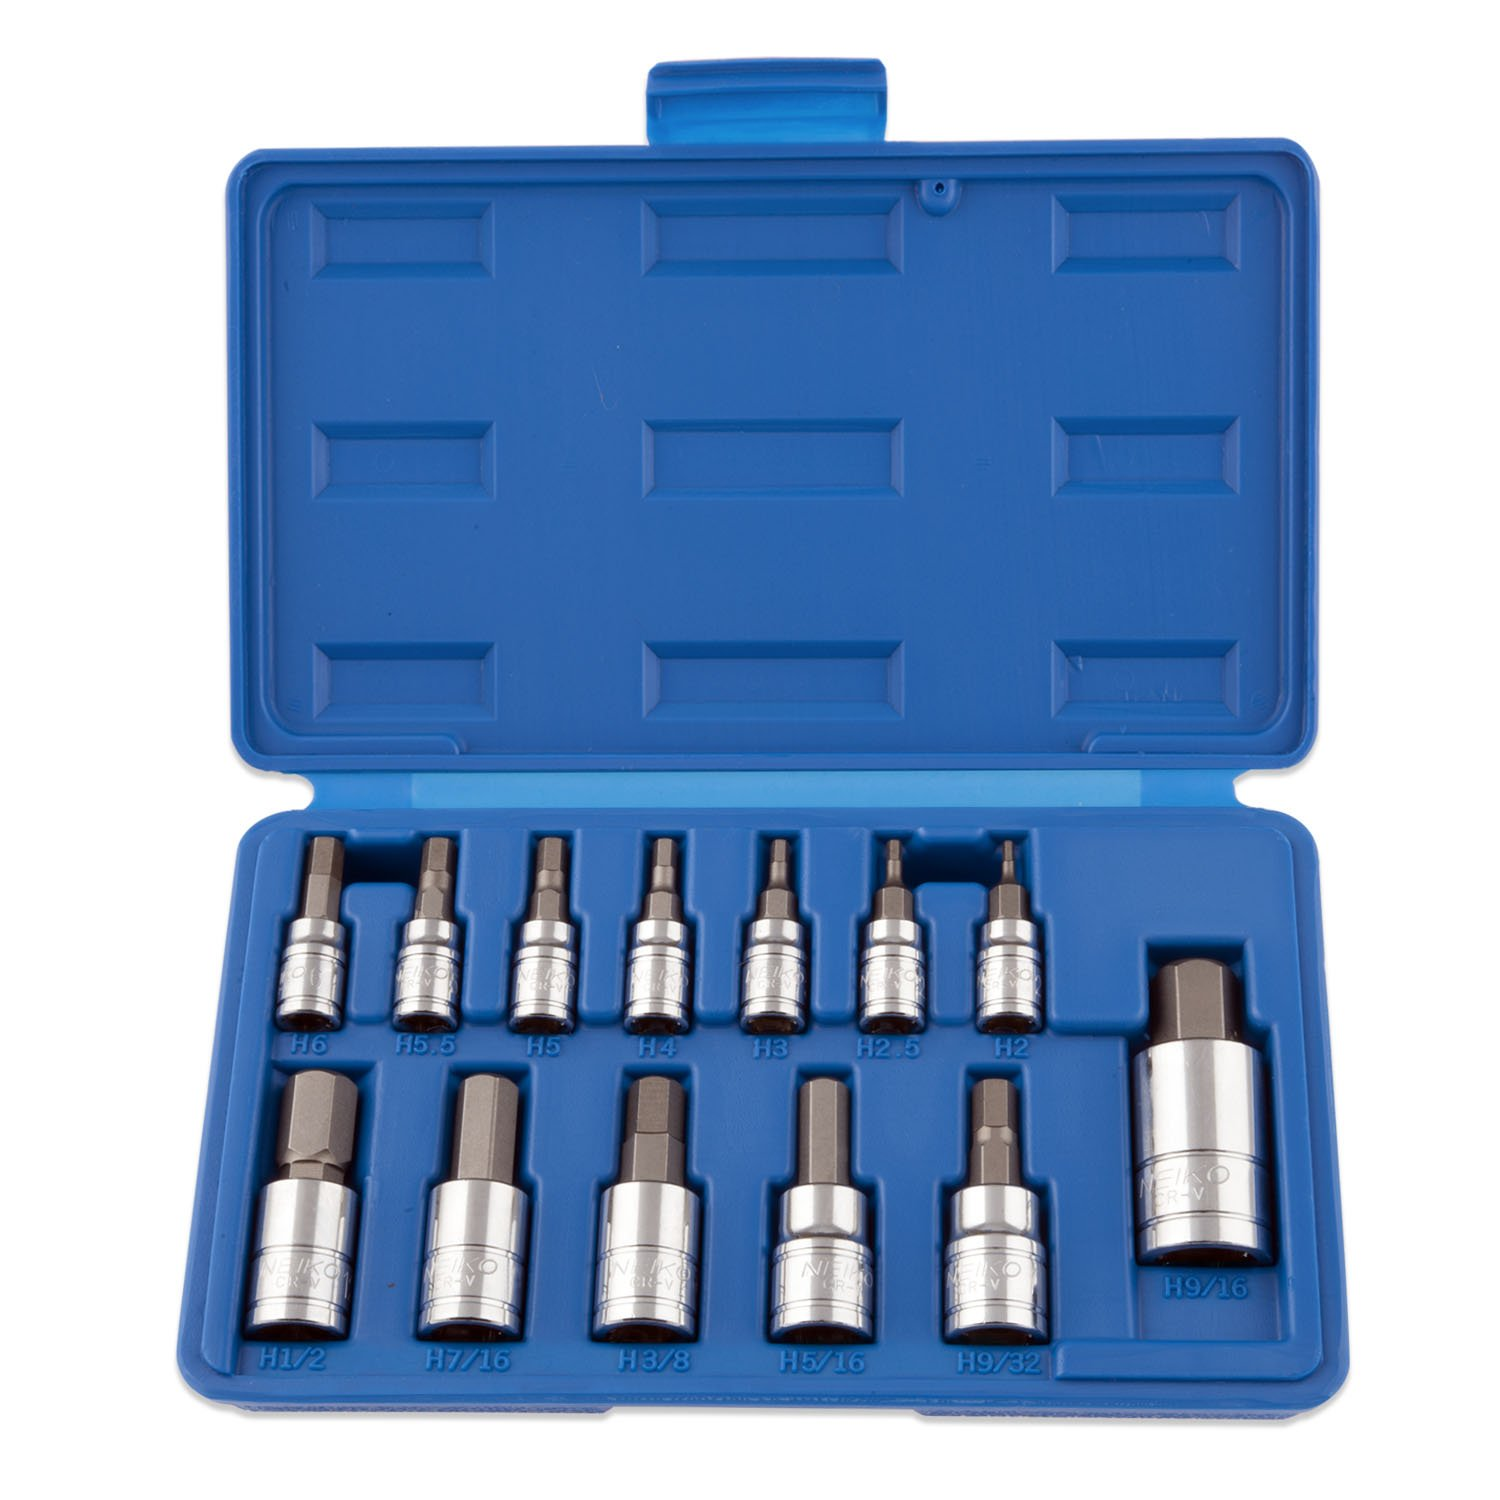 Neiko 10075A SAE Hex Bit Socket Set | 13-Piece Set | S2 Steel